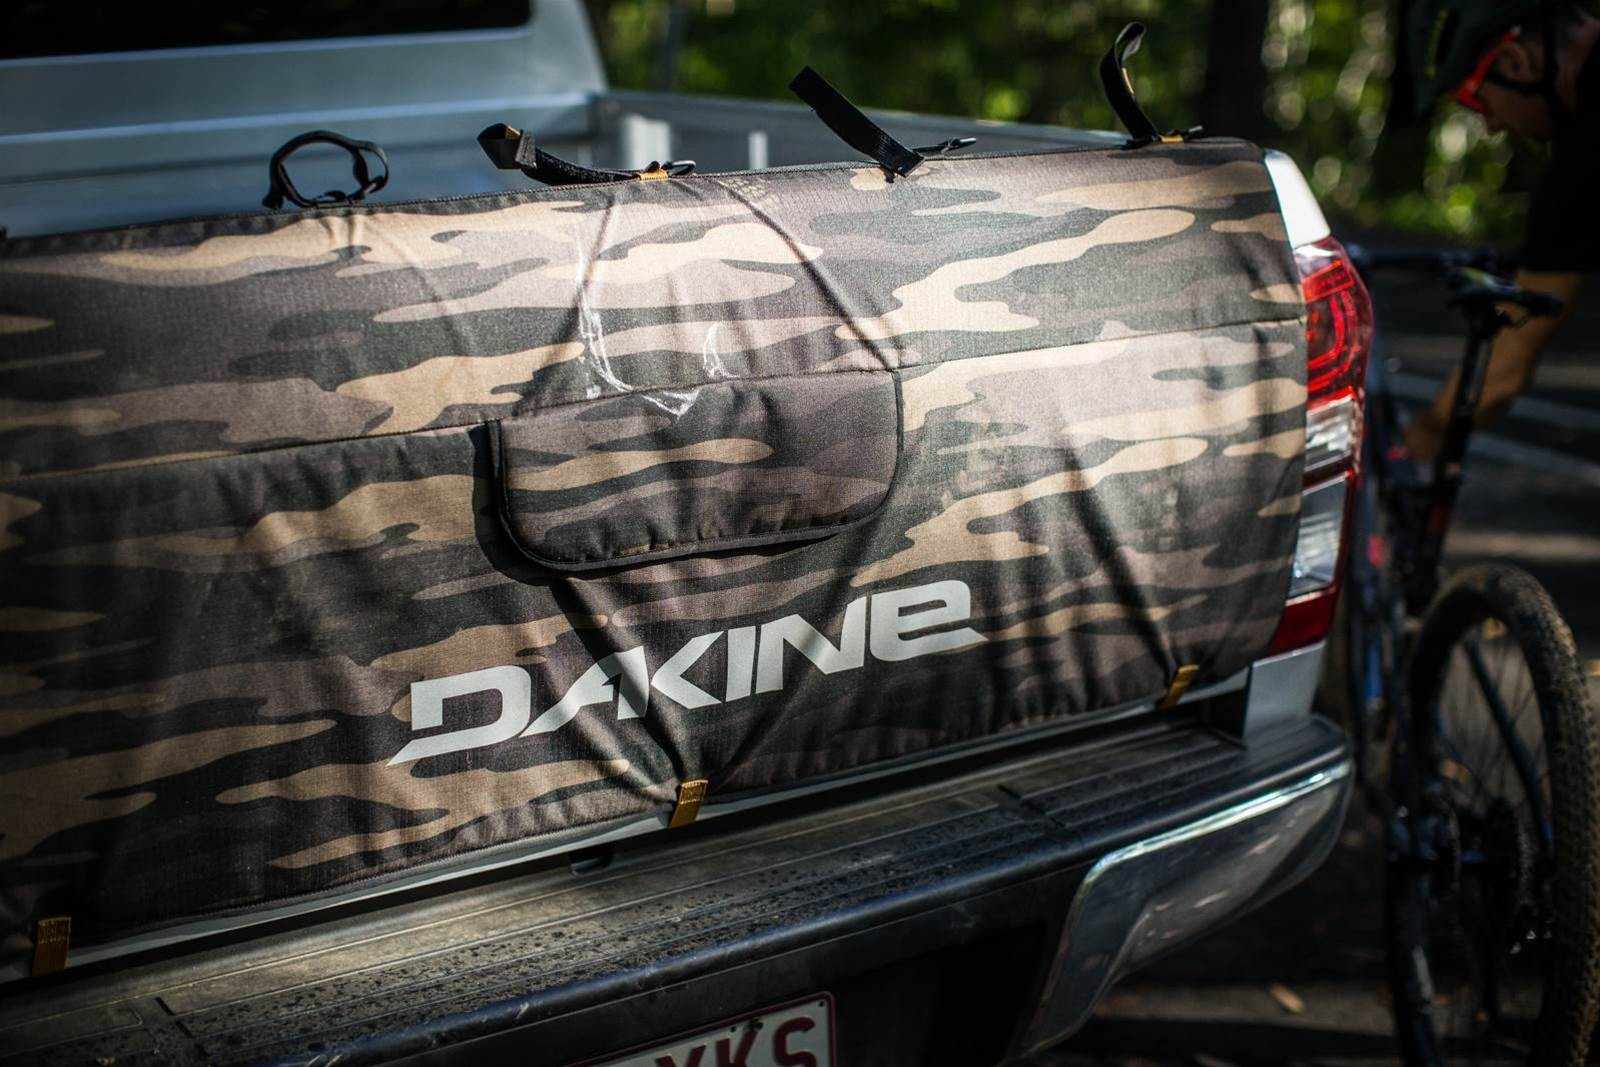 TESTED: Dakine Pickup Pad